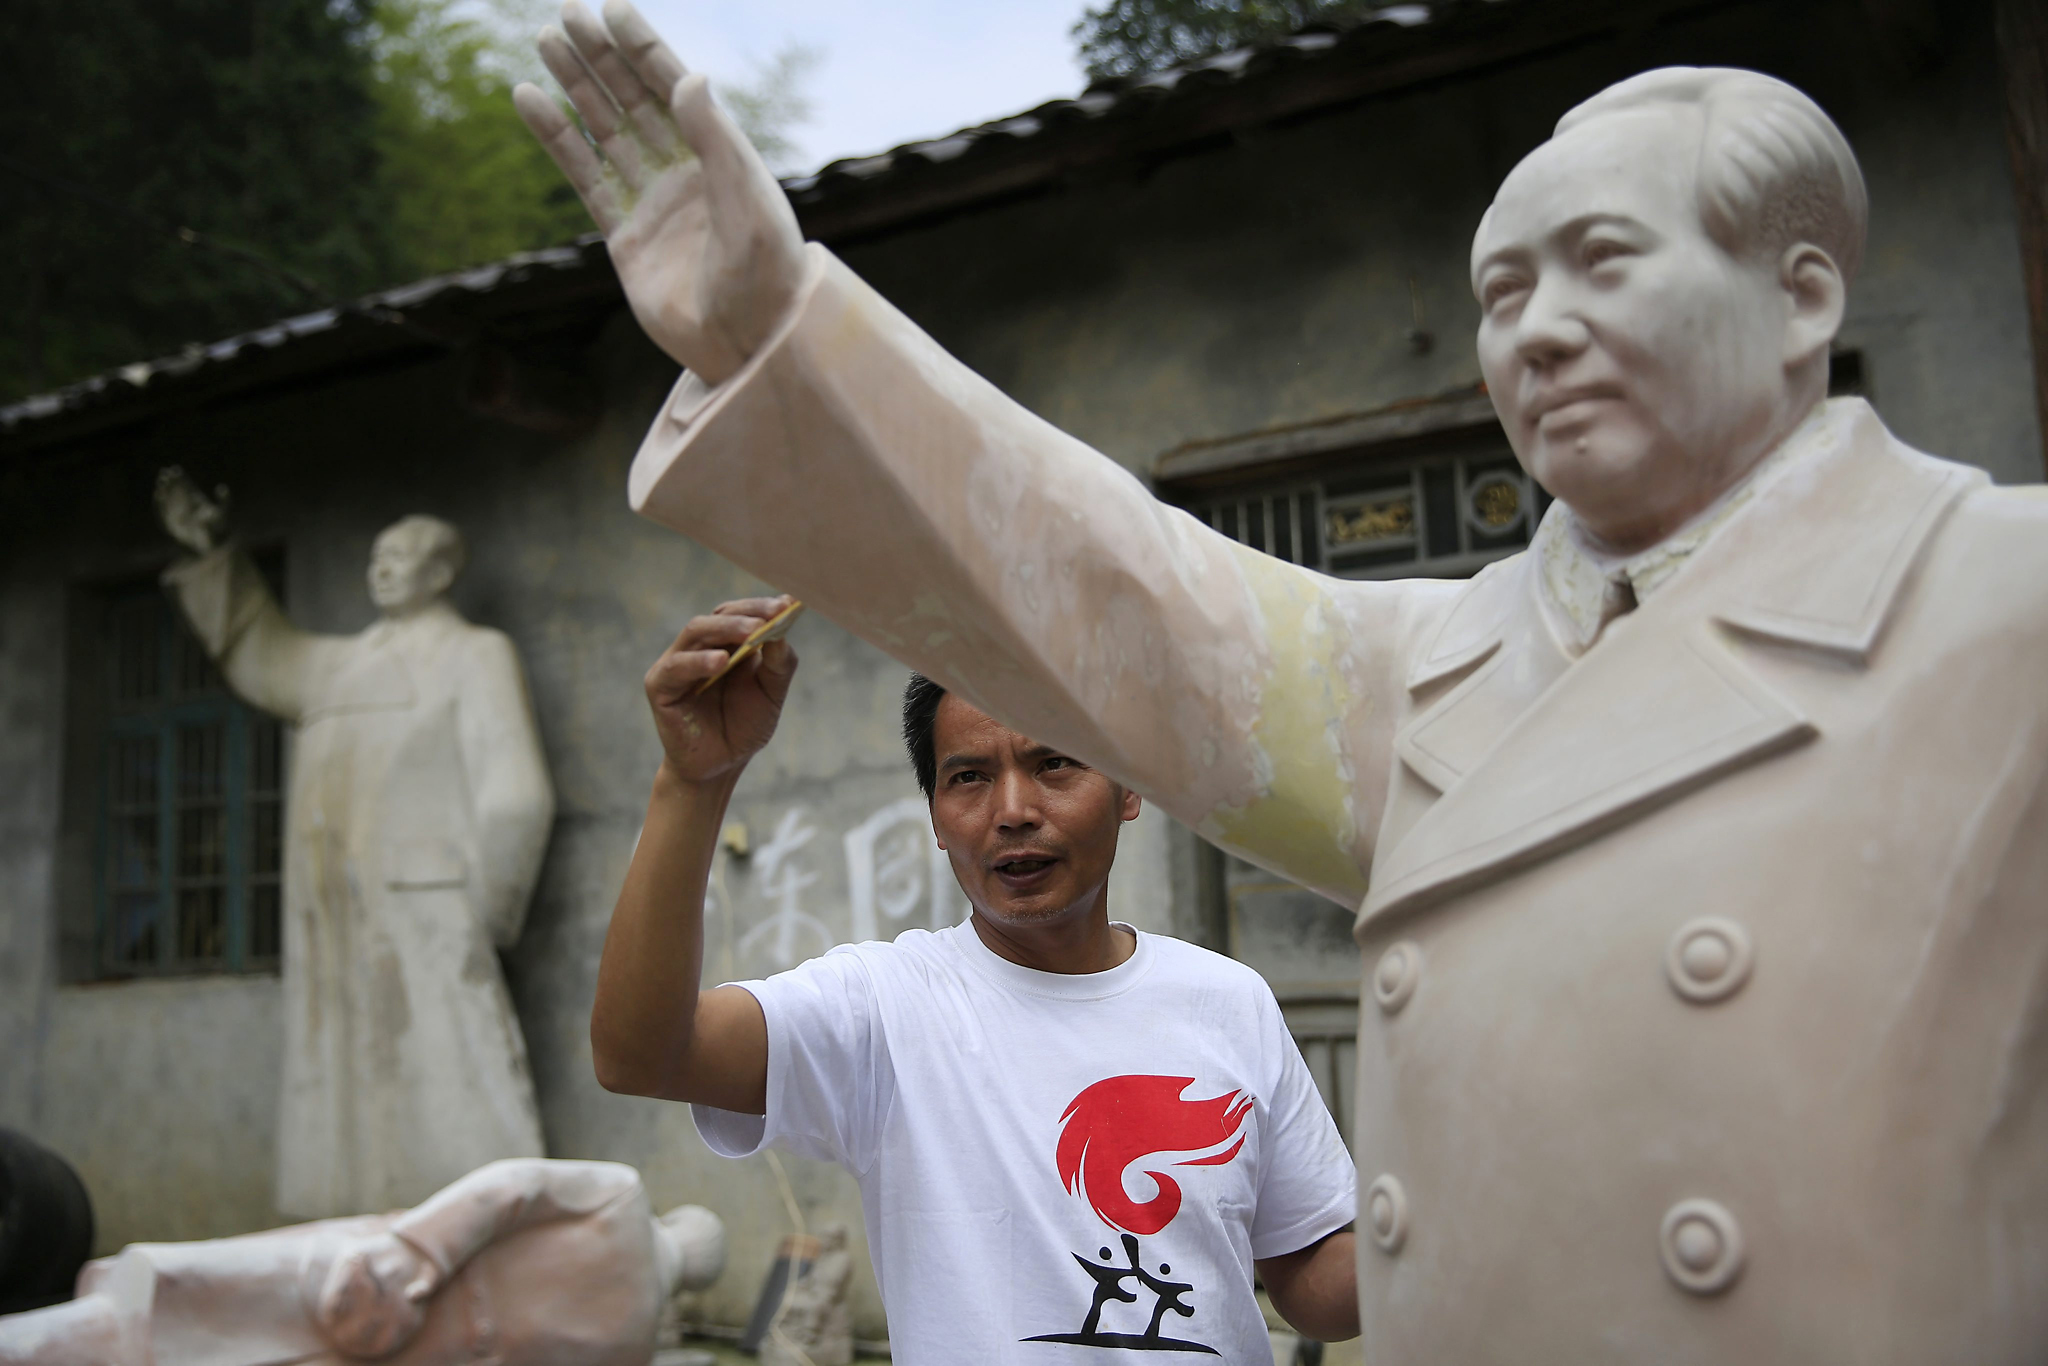 epa05300699 A picture made available on 12 May 2016 shows Chinese sculptor Tian Yongjun working on a Mao Zedong sculpture outside his workshop in Shaoshan, Hunan Province in central China, 29 April 2016. Shaoshan is the hometown of former Communist leader Mao Zedong, popularly known as Chairman Mao. As the 50th anniversary of the Cultural Revolution approaches on 16 May, there is scant mention of the revolution where millions of intellectuals were persecuted and tortured in a bid to purge Mao's critics in his this small town where he was hailed as a great hero and leader.  EPA/HOW HWEE YOUNG